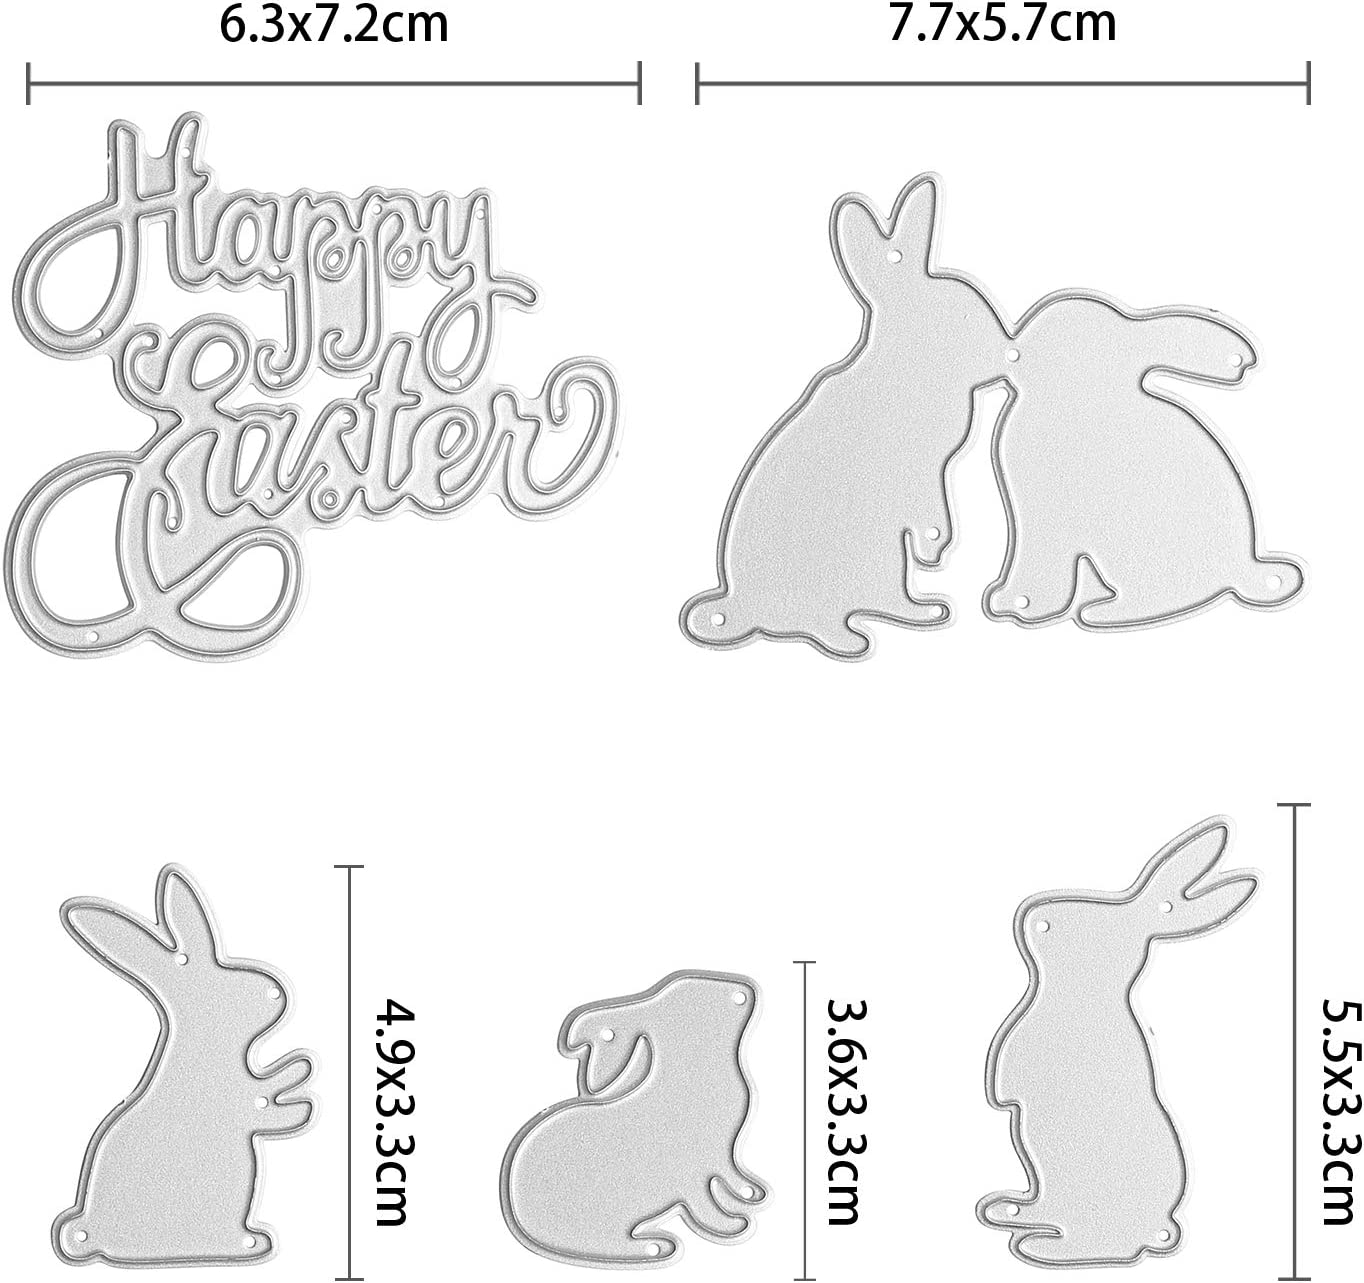 New 5 Pieces Totally TuoShei Eater Cutting Dies Happy Easter Letter and Bunny Rabbit Metal Stencil Template for DIY Scrapbook Album Paper Card Embossing Style 1